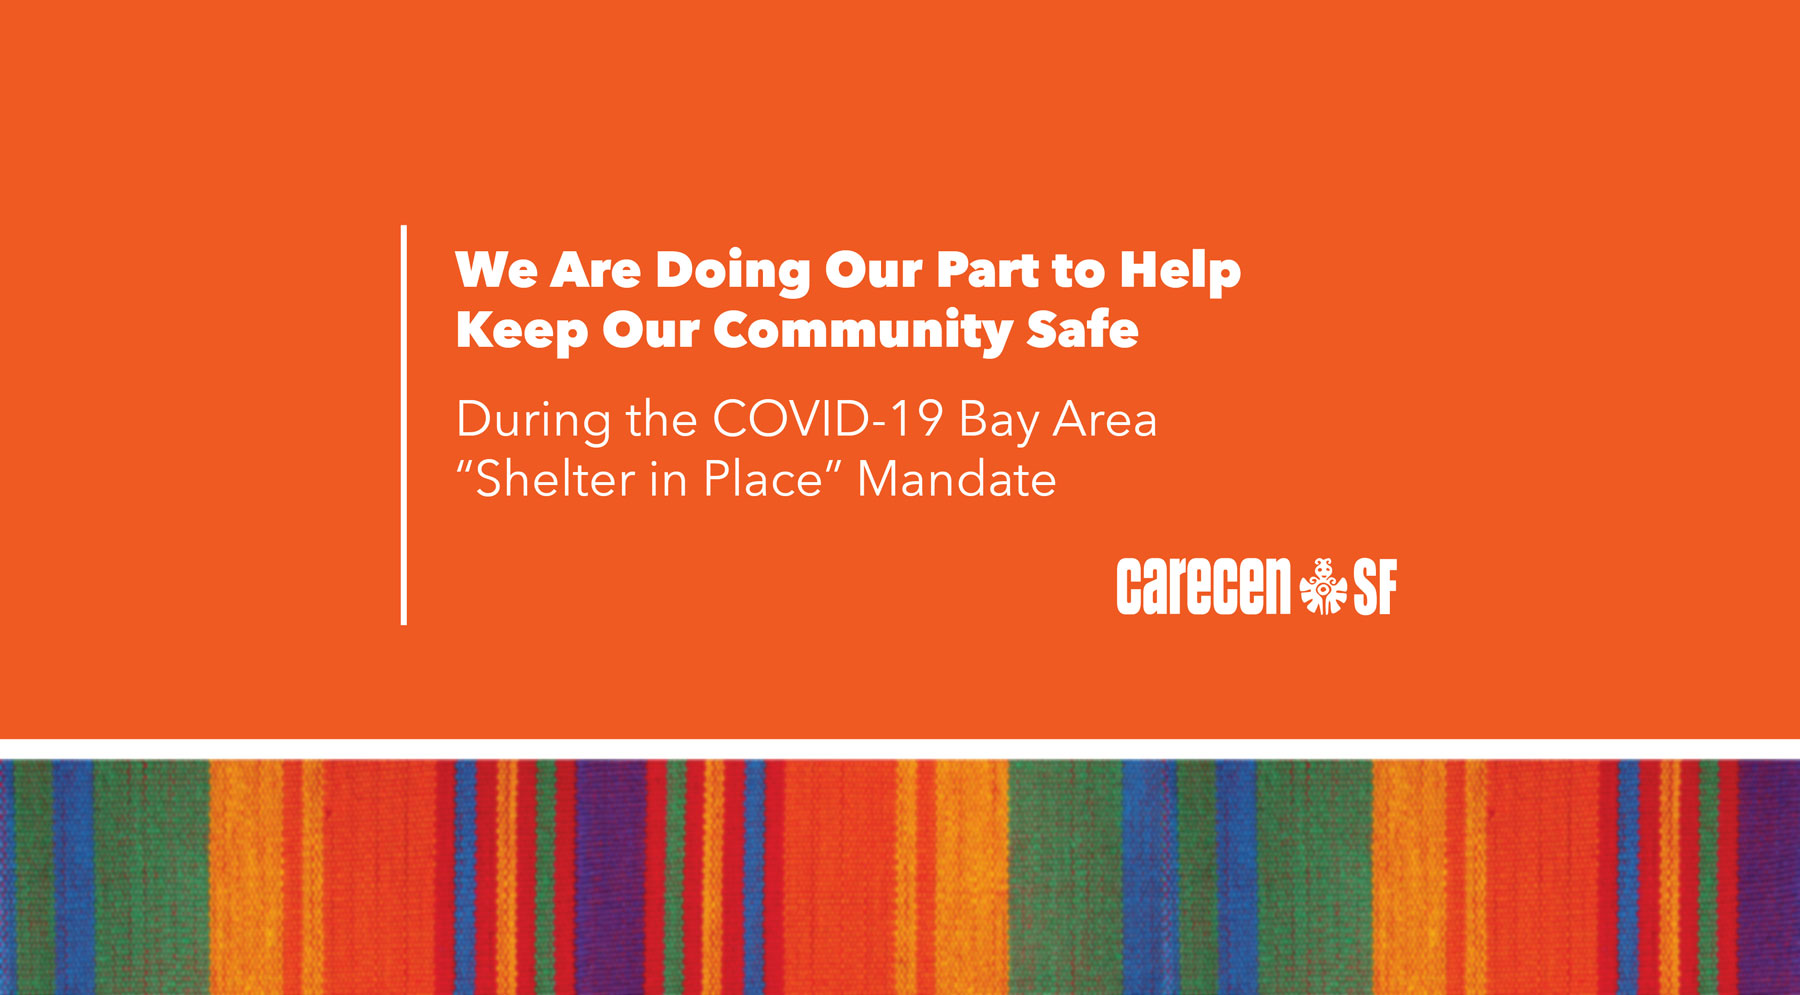 "We Are Doing Our Part to Help Keep Our Community Safe During the COVID-19 Bay Area ""Shelter in Place"" Mandate"